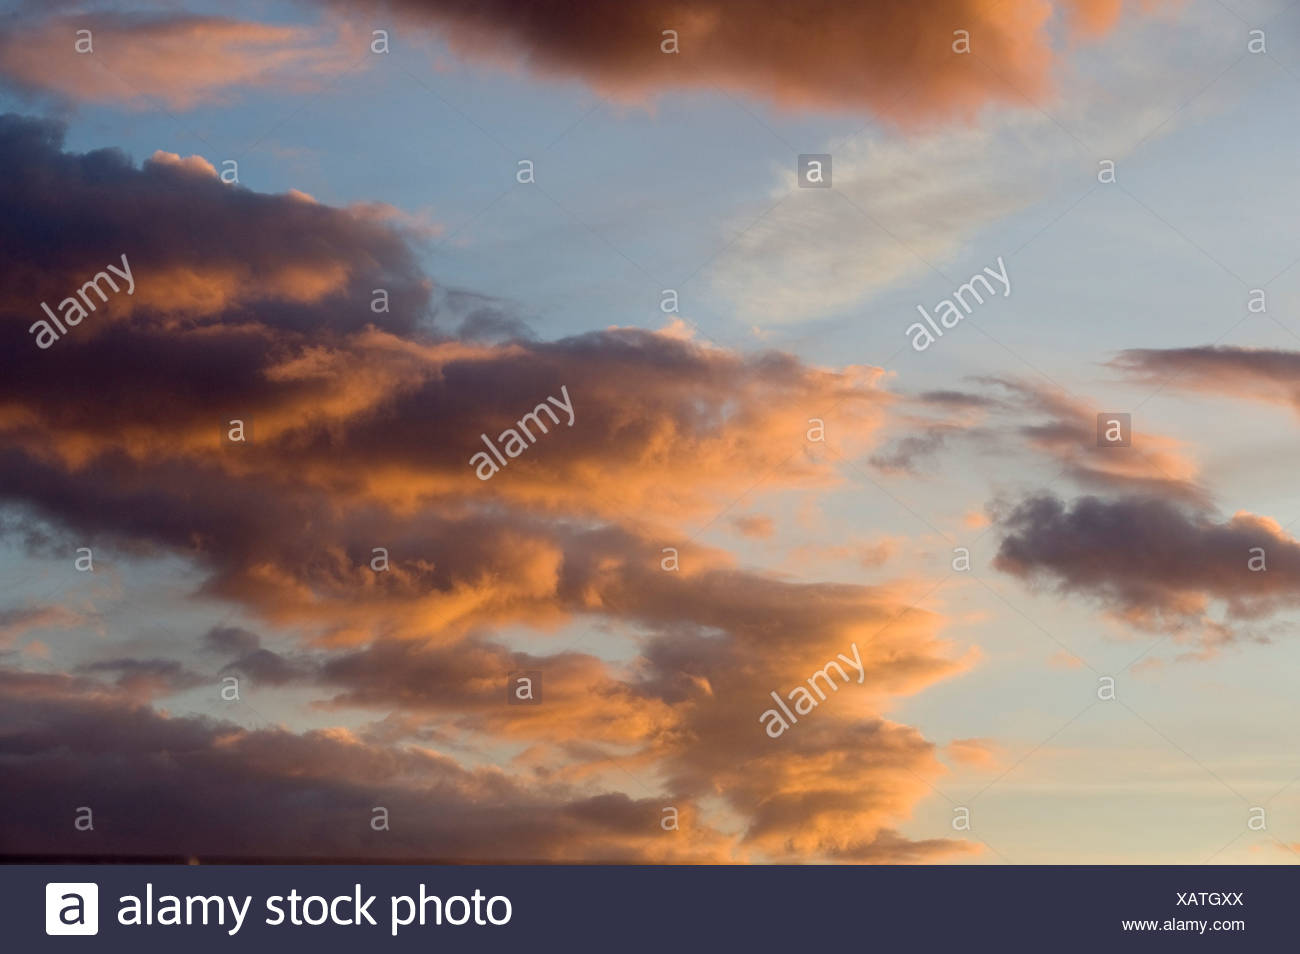 Cloudy sky at sunset, cumulus clouds, Estonia, Baltic States, Northeastern Europe - Stock Image